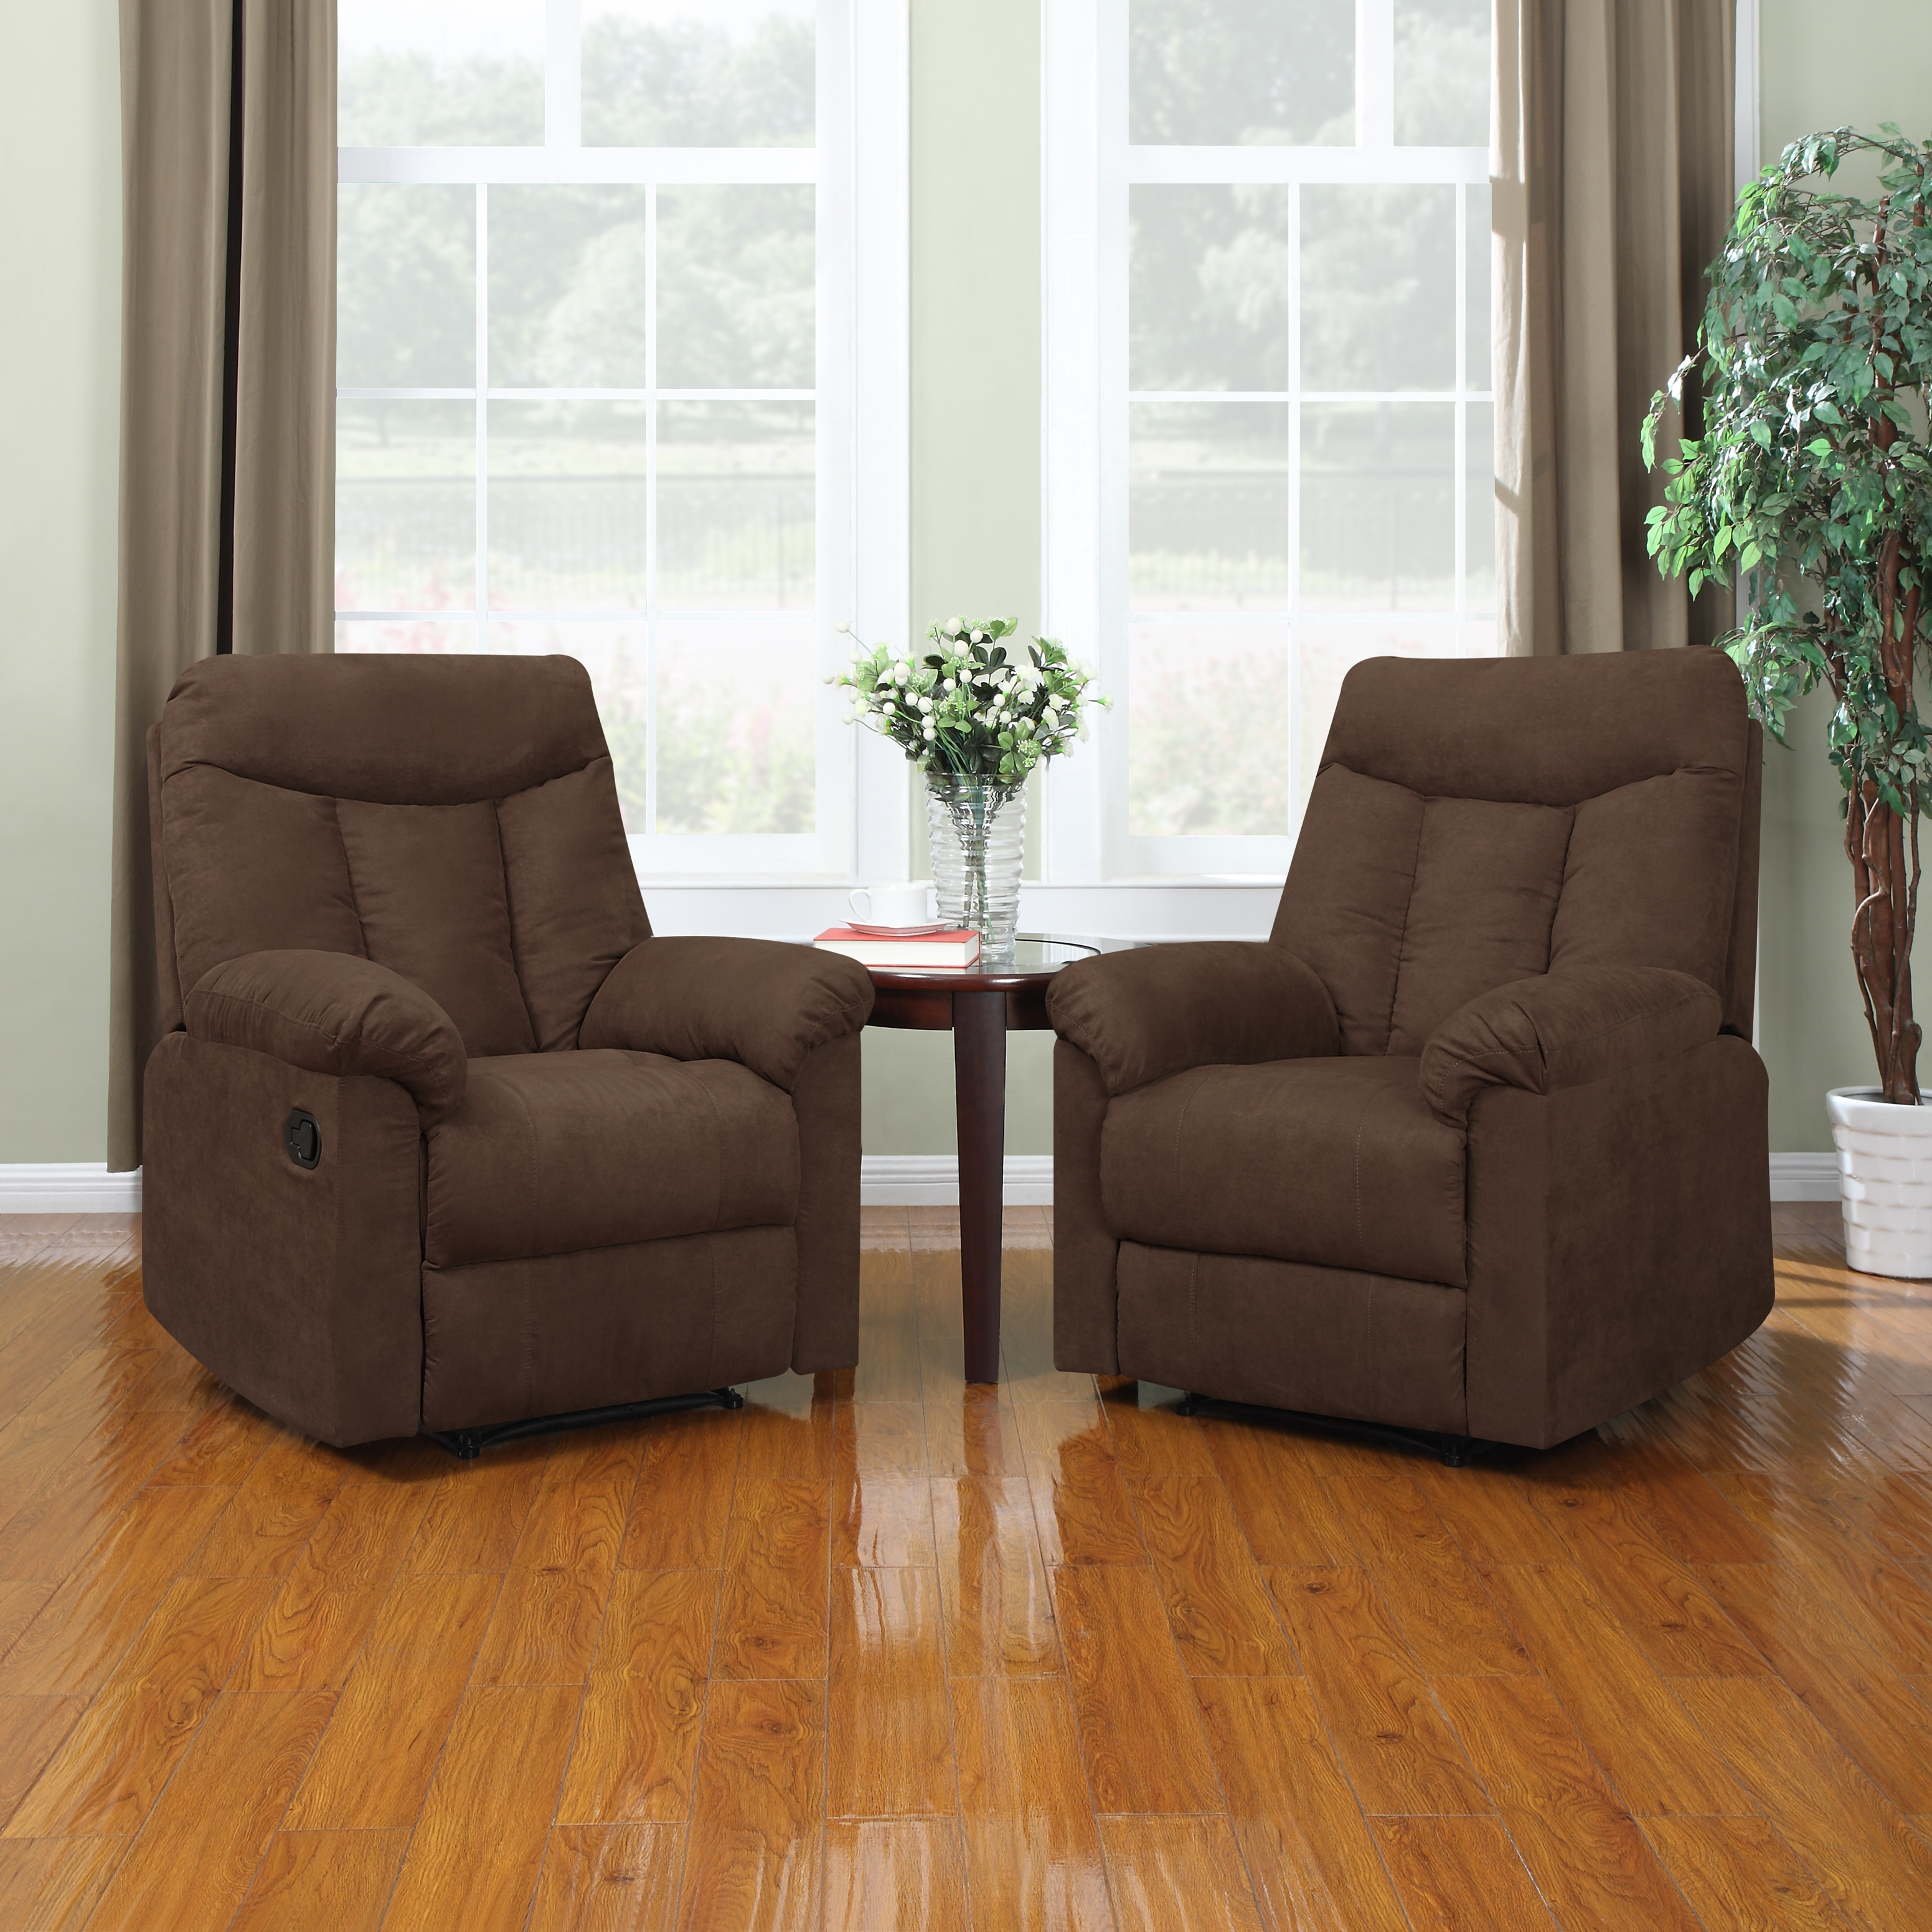 Portfolio ProLounger Wall Hugger Dark Brown Microfiber Recliners (Set of 2) at Sears.com